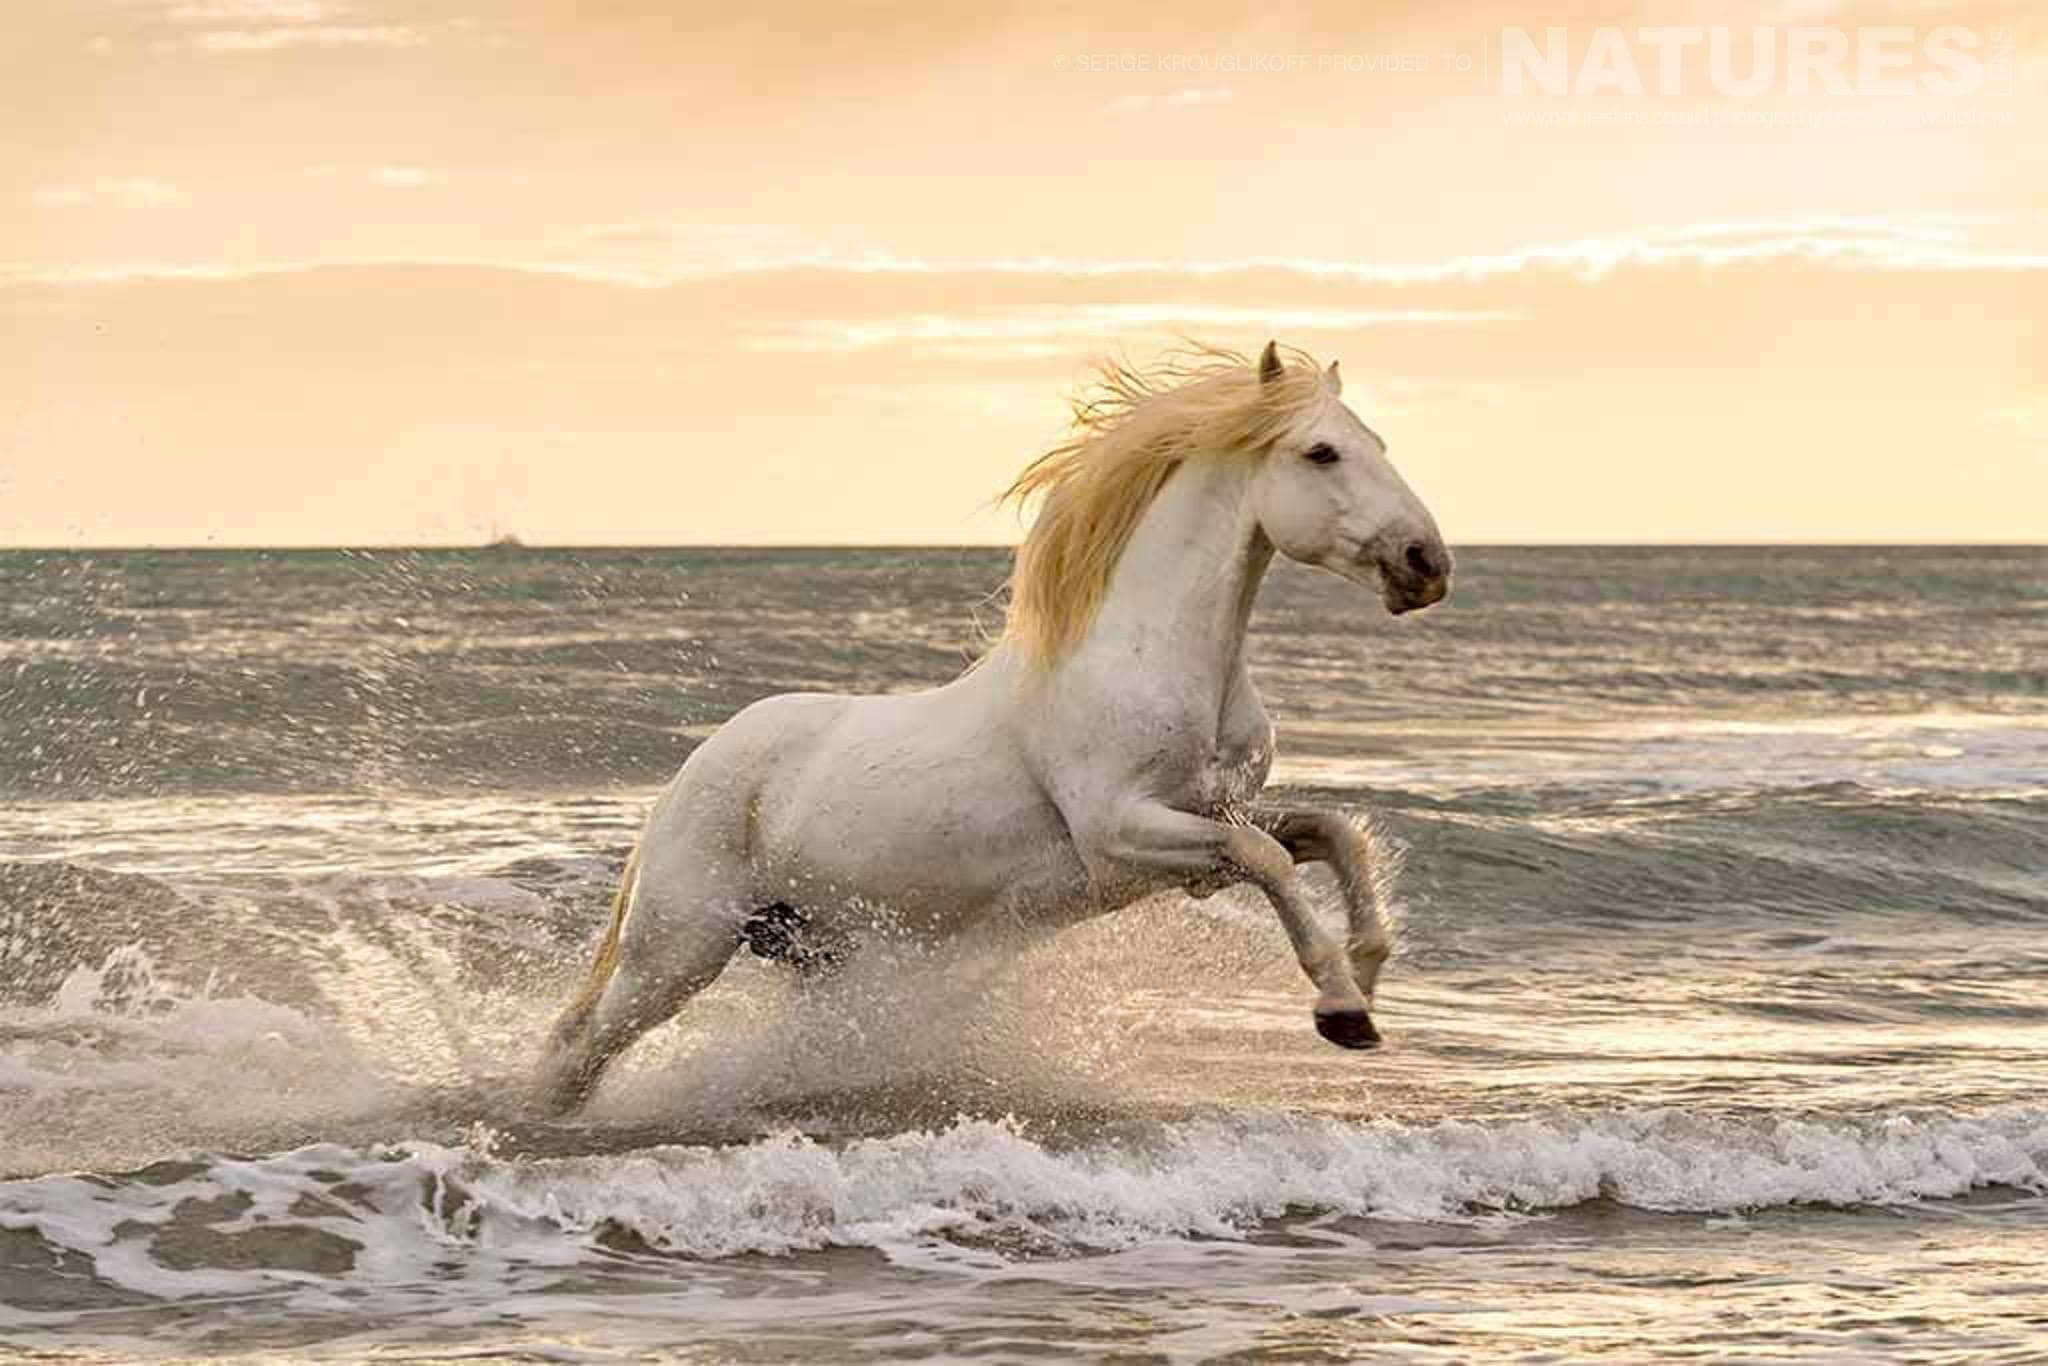 White stallion leaping out of the surf at sunset typical of the type of image that may be captured during the NaturesLens Wild White Horses of the Camargue Photography Holiday